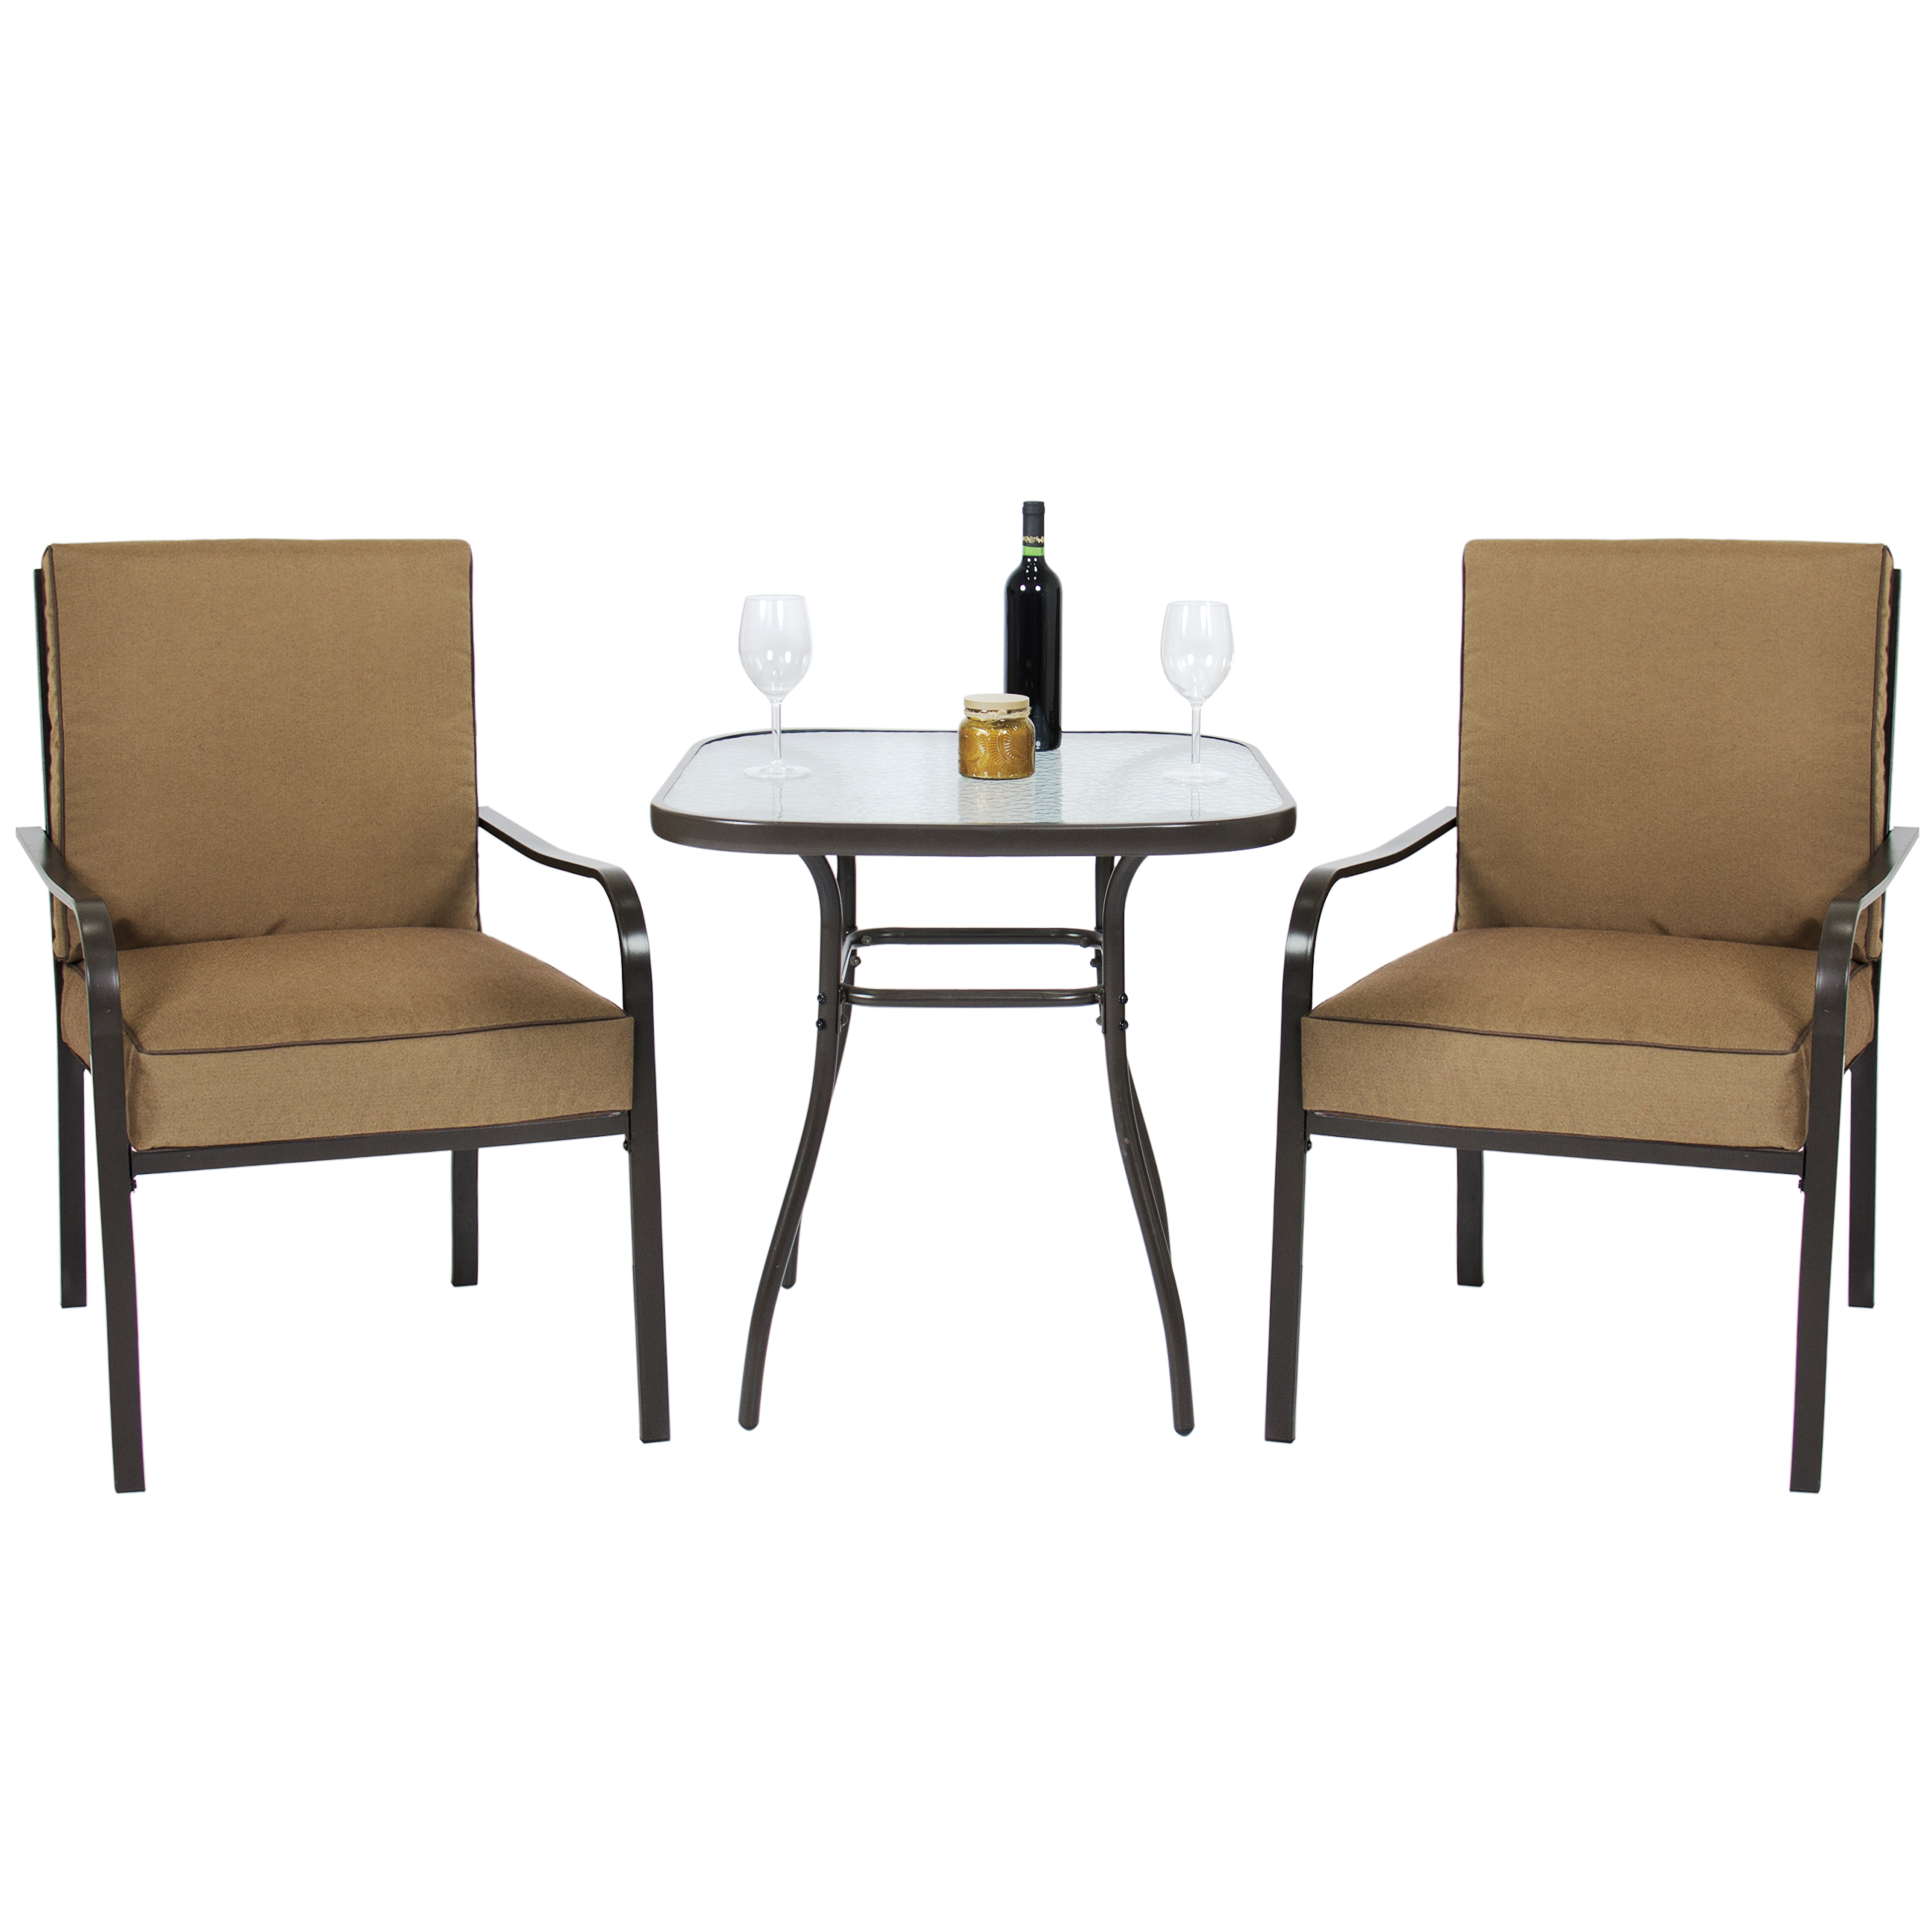 Best Choice Products 3pc Outdoor Patio Bistro Set W  Glass Top Table, 2 Chairs W  Cushions by Best Choice Products